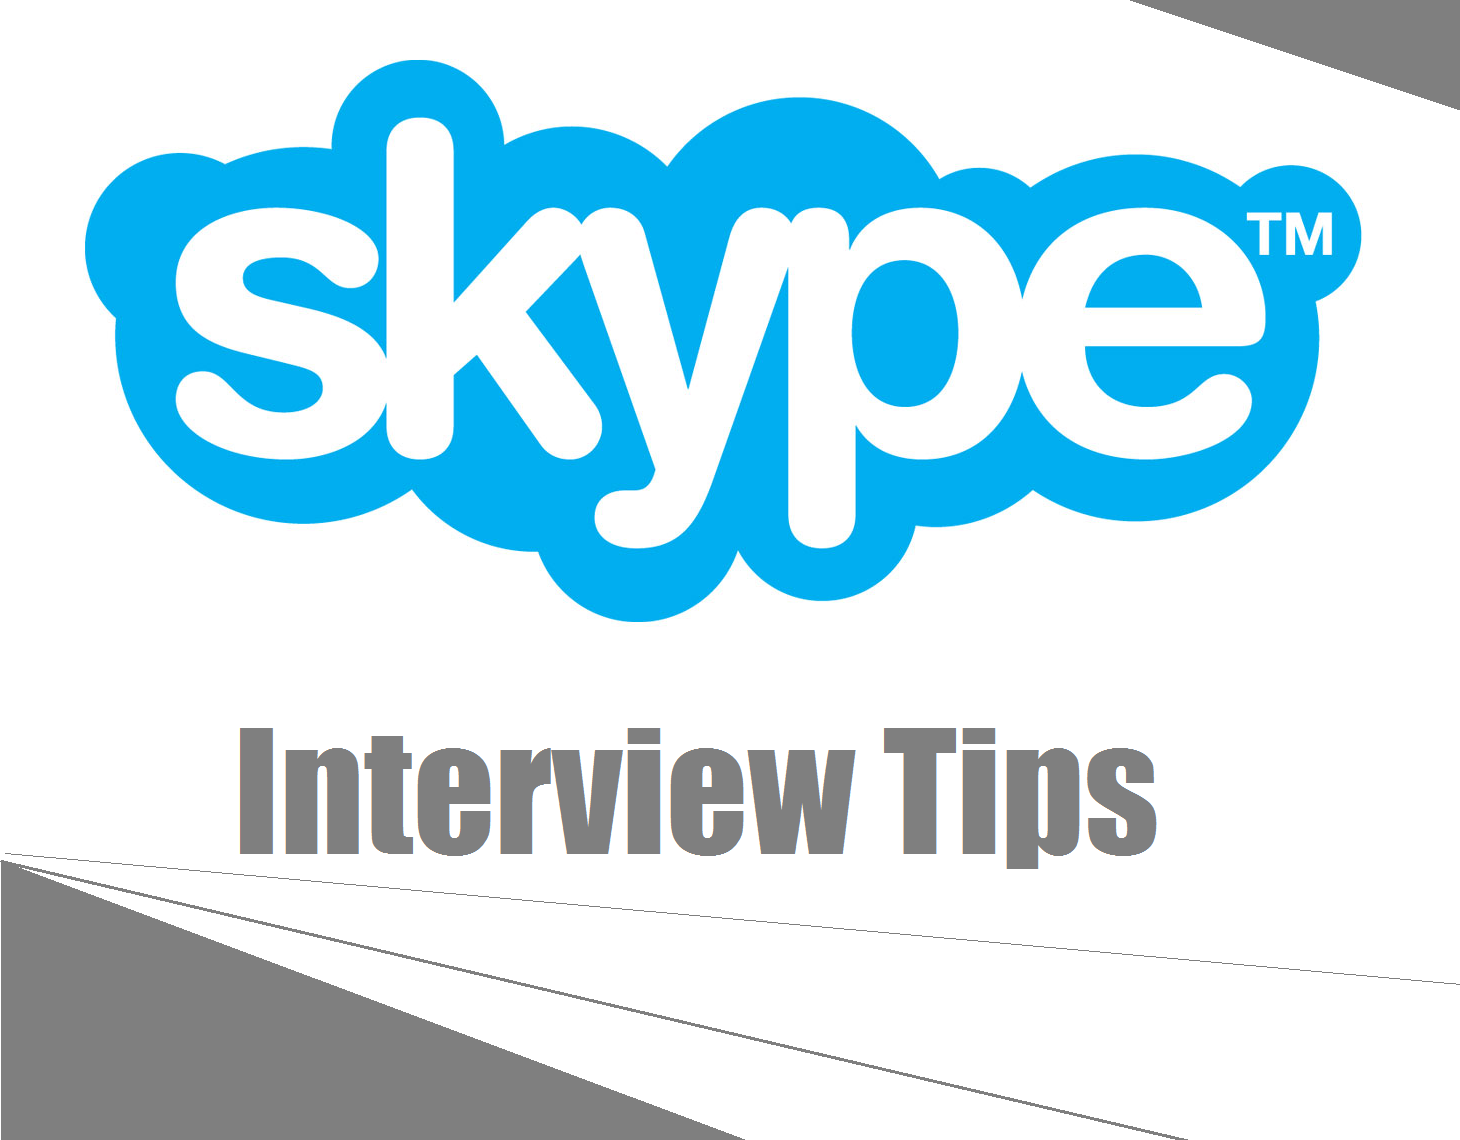 how to skype interviews purdue cco blog skype interviews